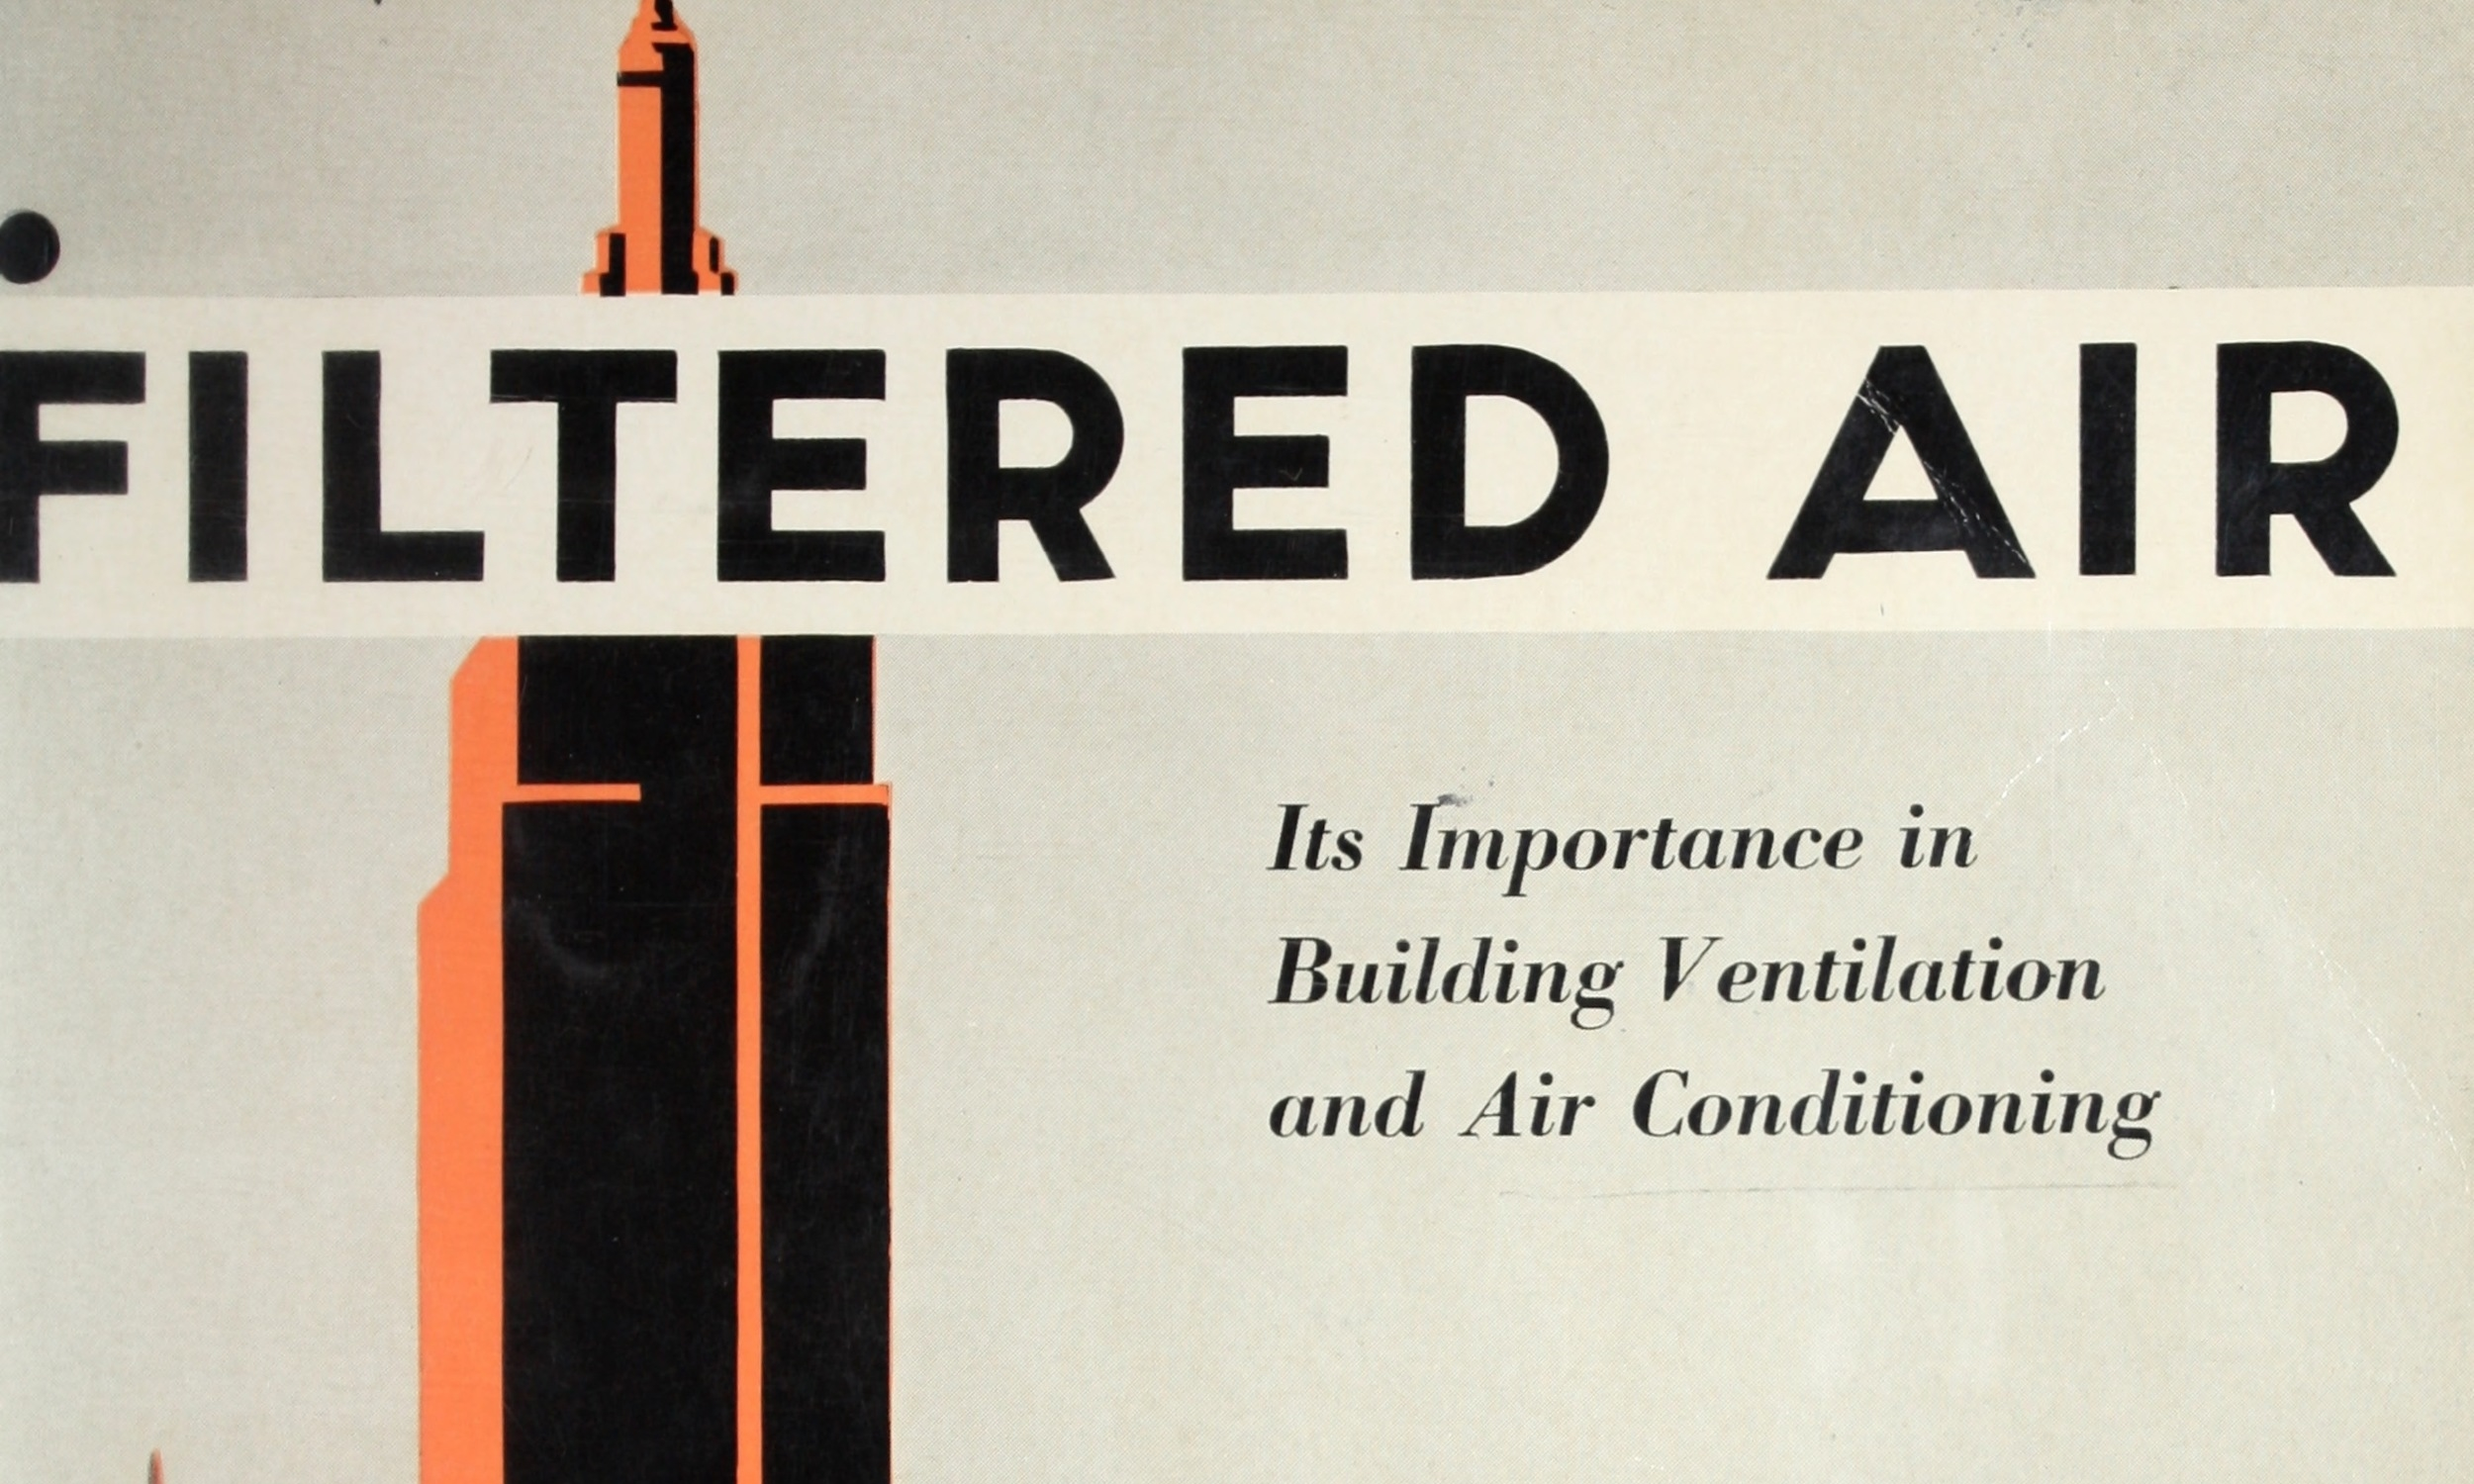 Filtered air, its importance in building ventilation and air conditioning.